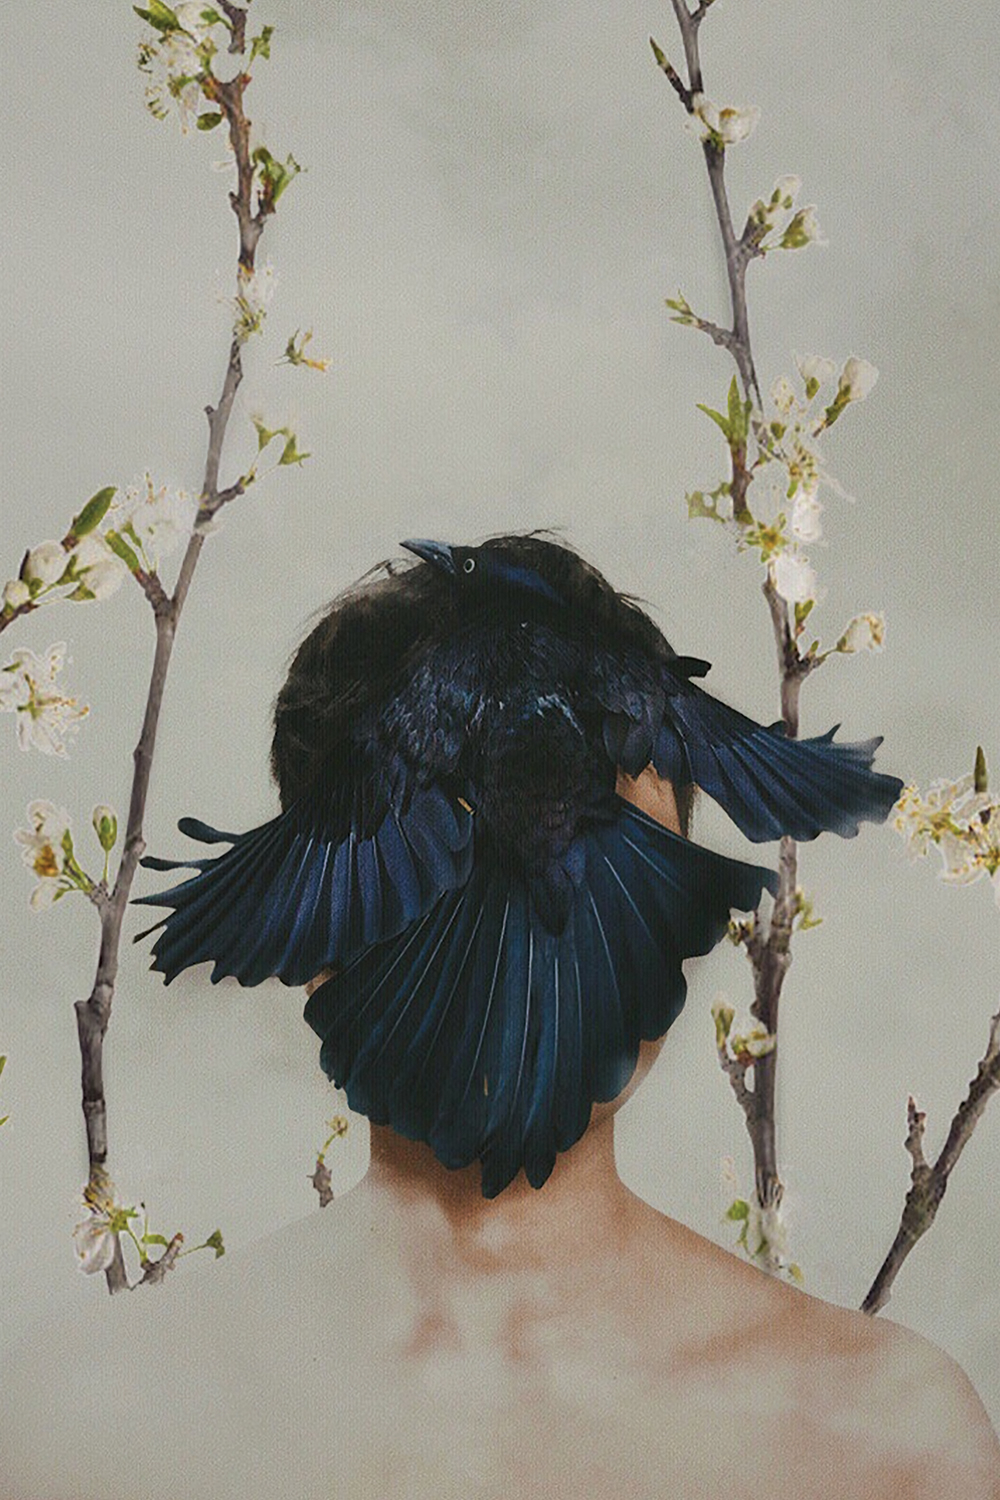 Hiding Ourselves by Deandra Lee shows a woman with a black crow covering her face and white flower branches in the background